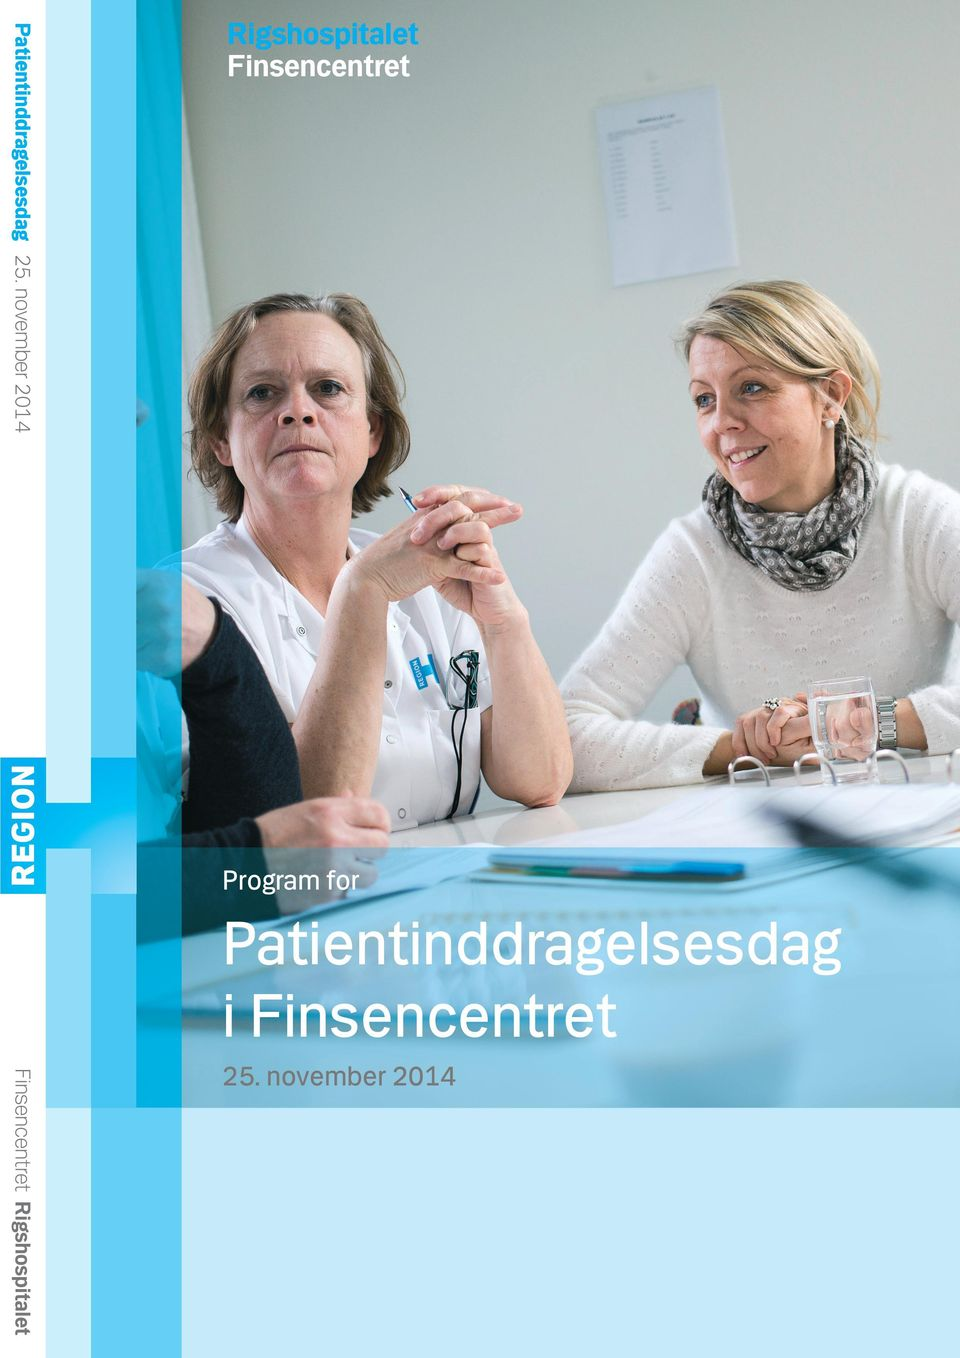 Finsencentret Program for